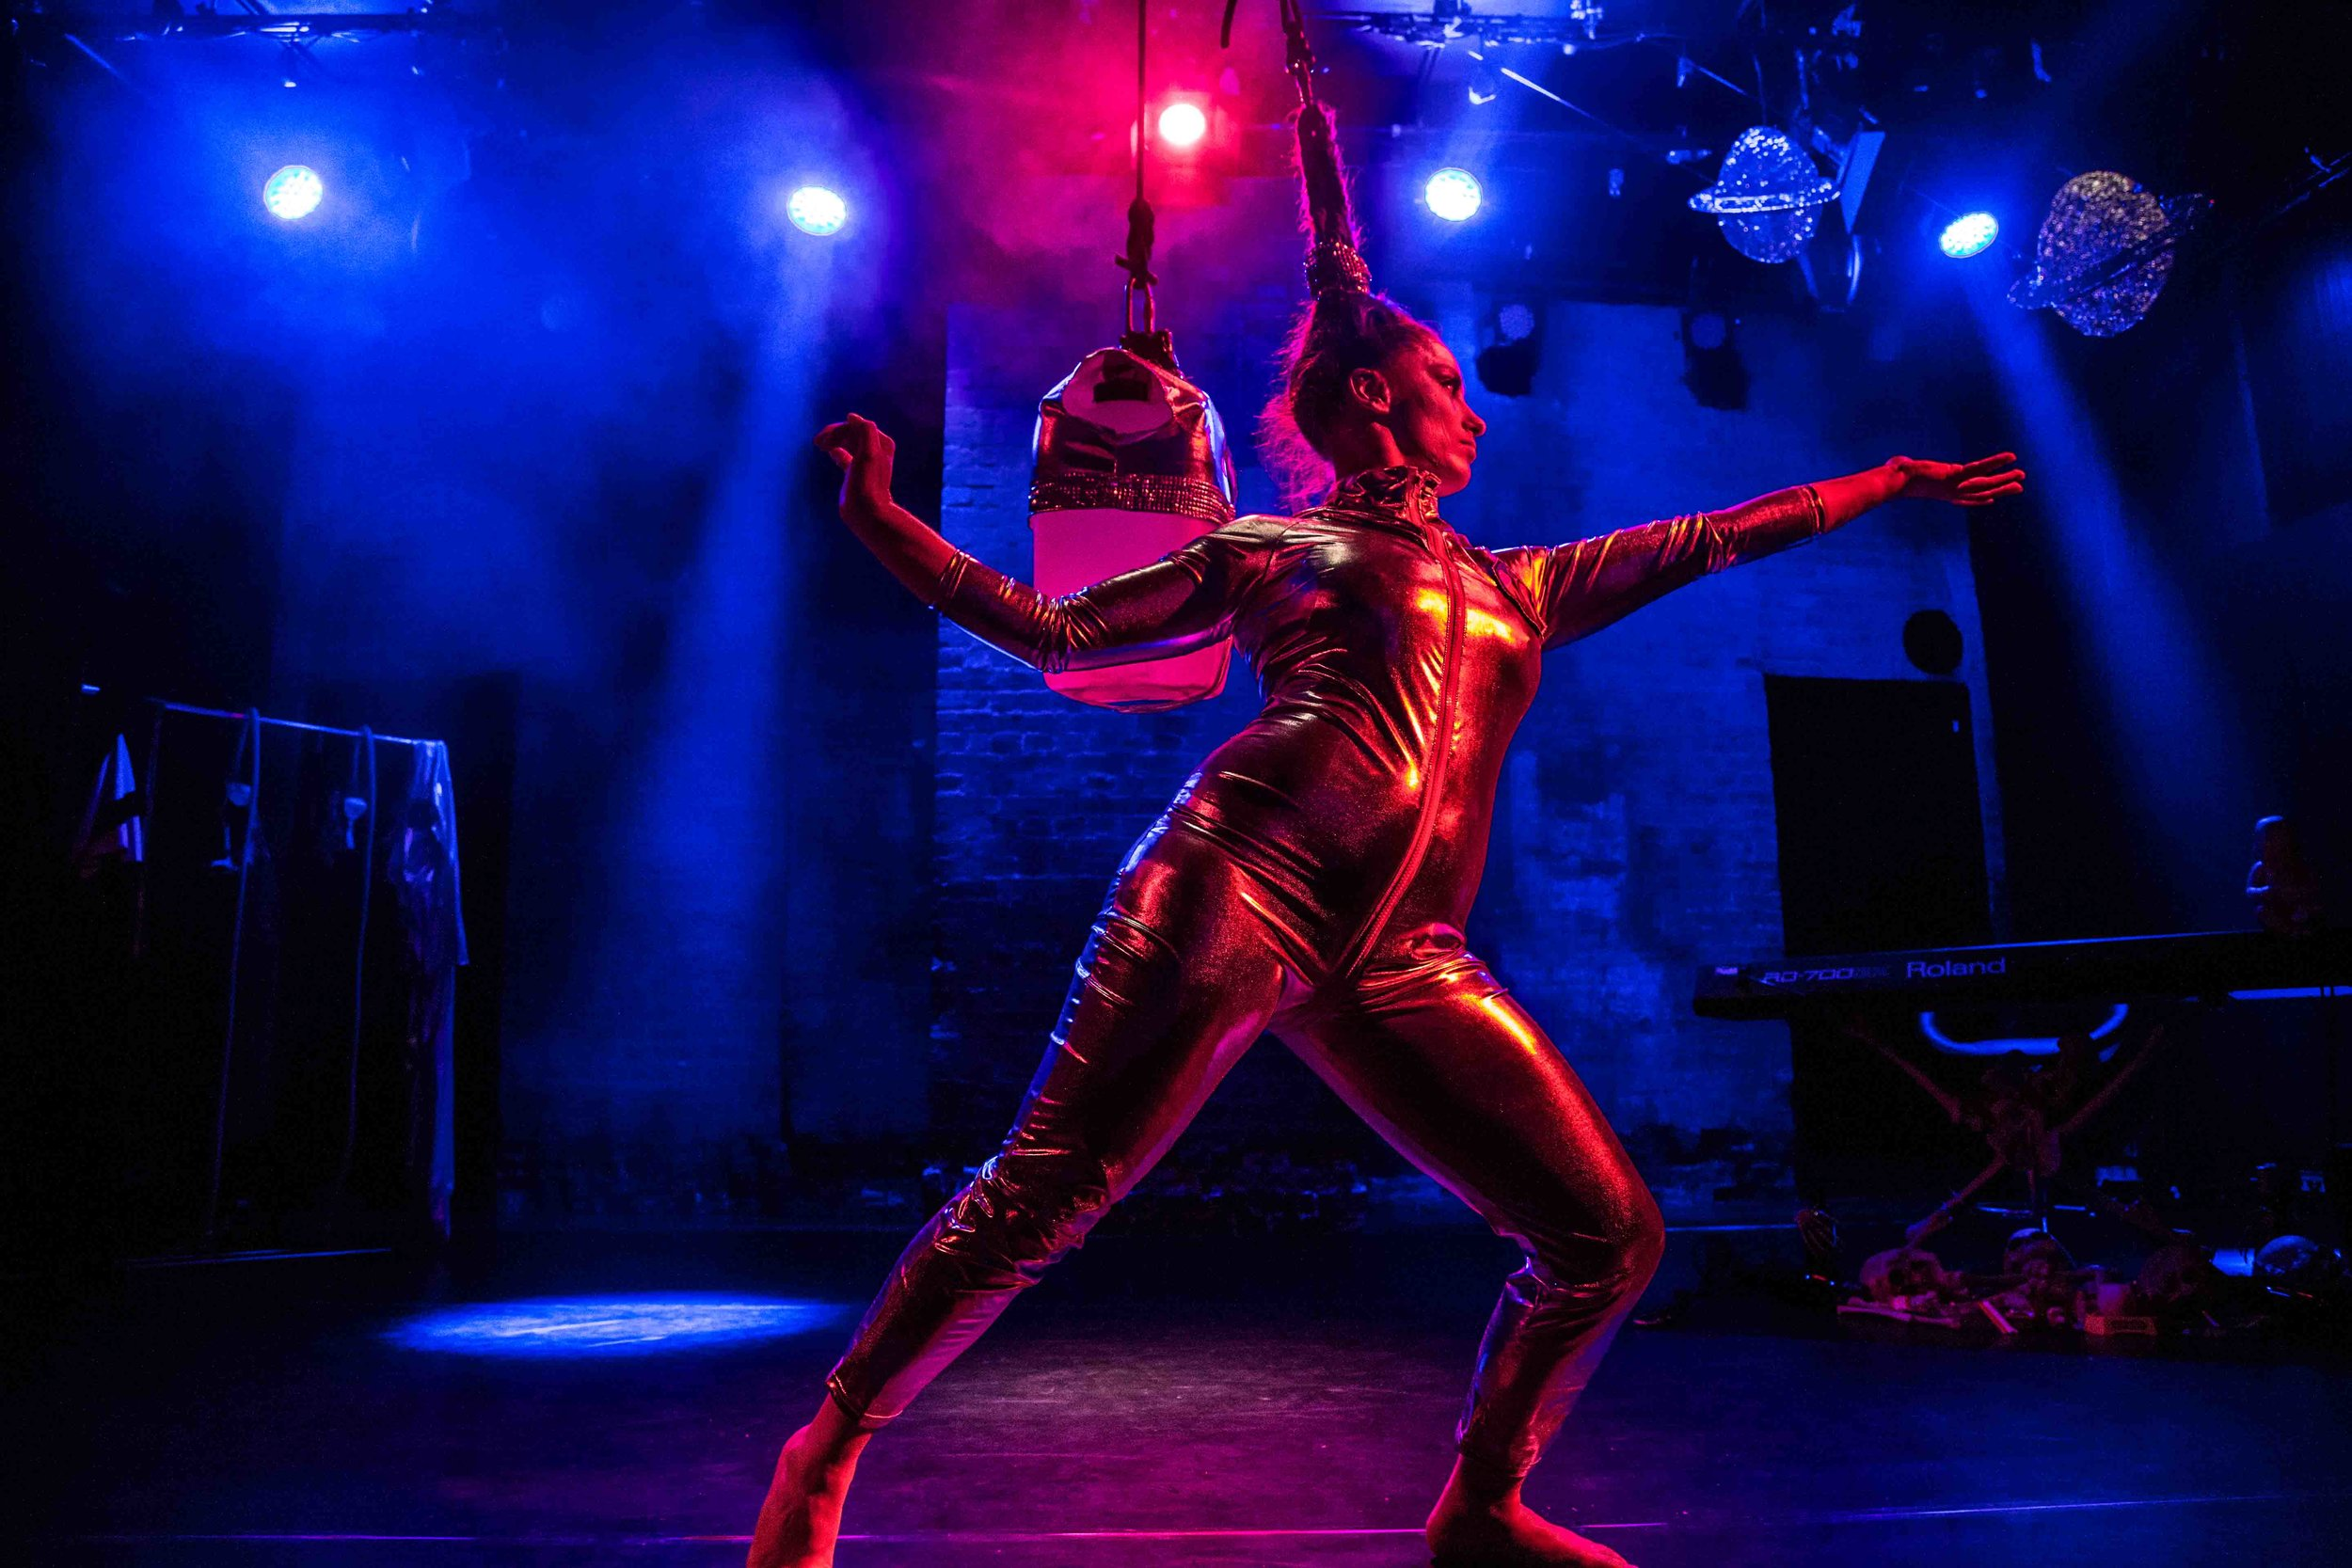 - Fram & DuntContemporary circus showSet/Lx/video + costume design by MHzFram and Dunt tells an unlikely story through hair hanging and incredible aerial acts.